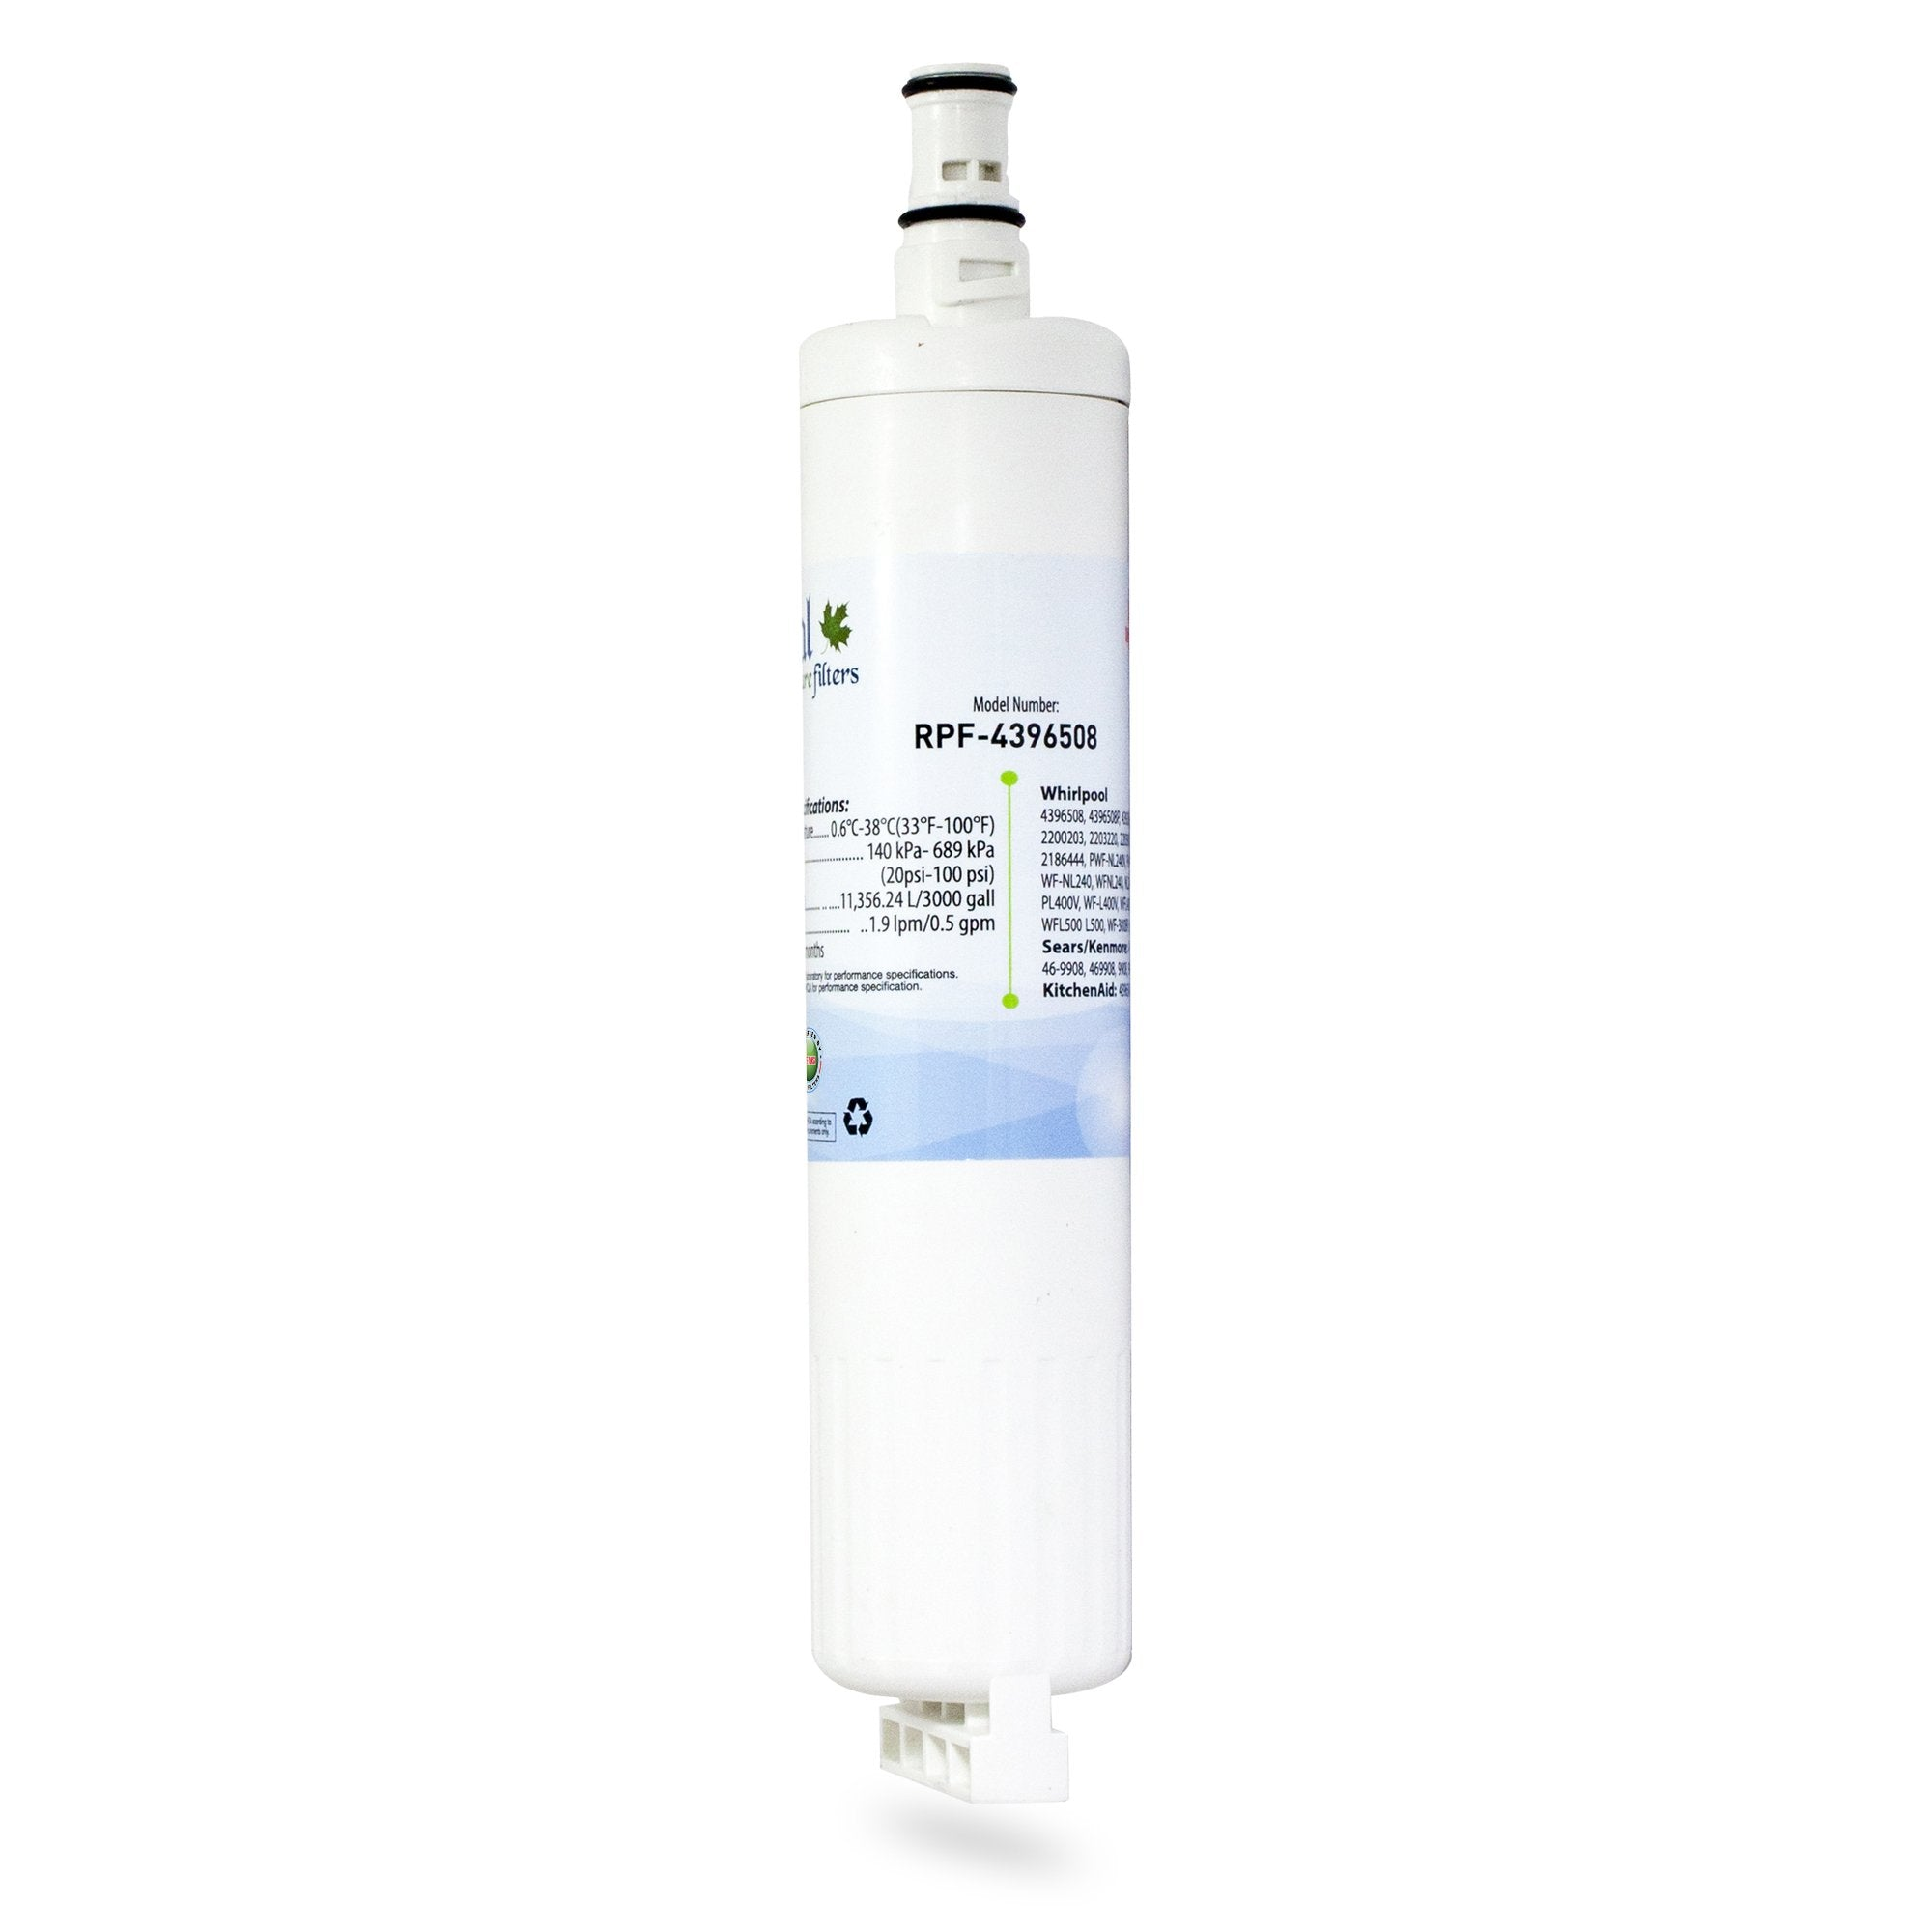 Maytag UKF8001/AXX Compatible CTO Refrigerator Water Filter - The Filters Club